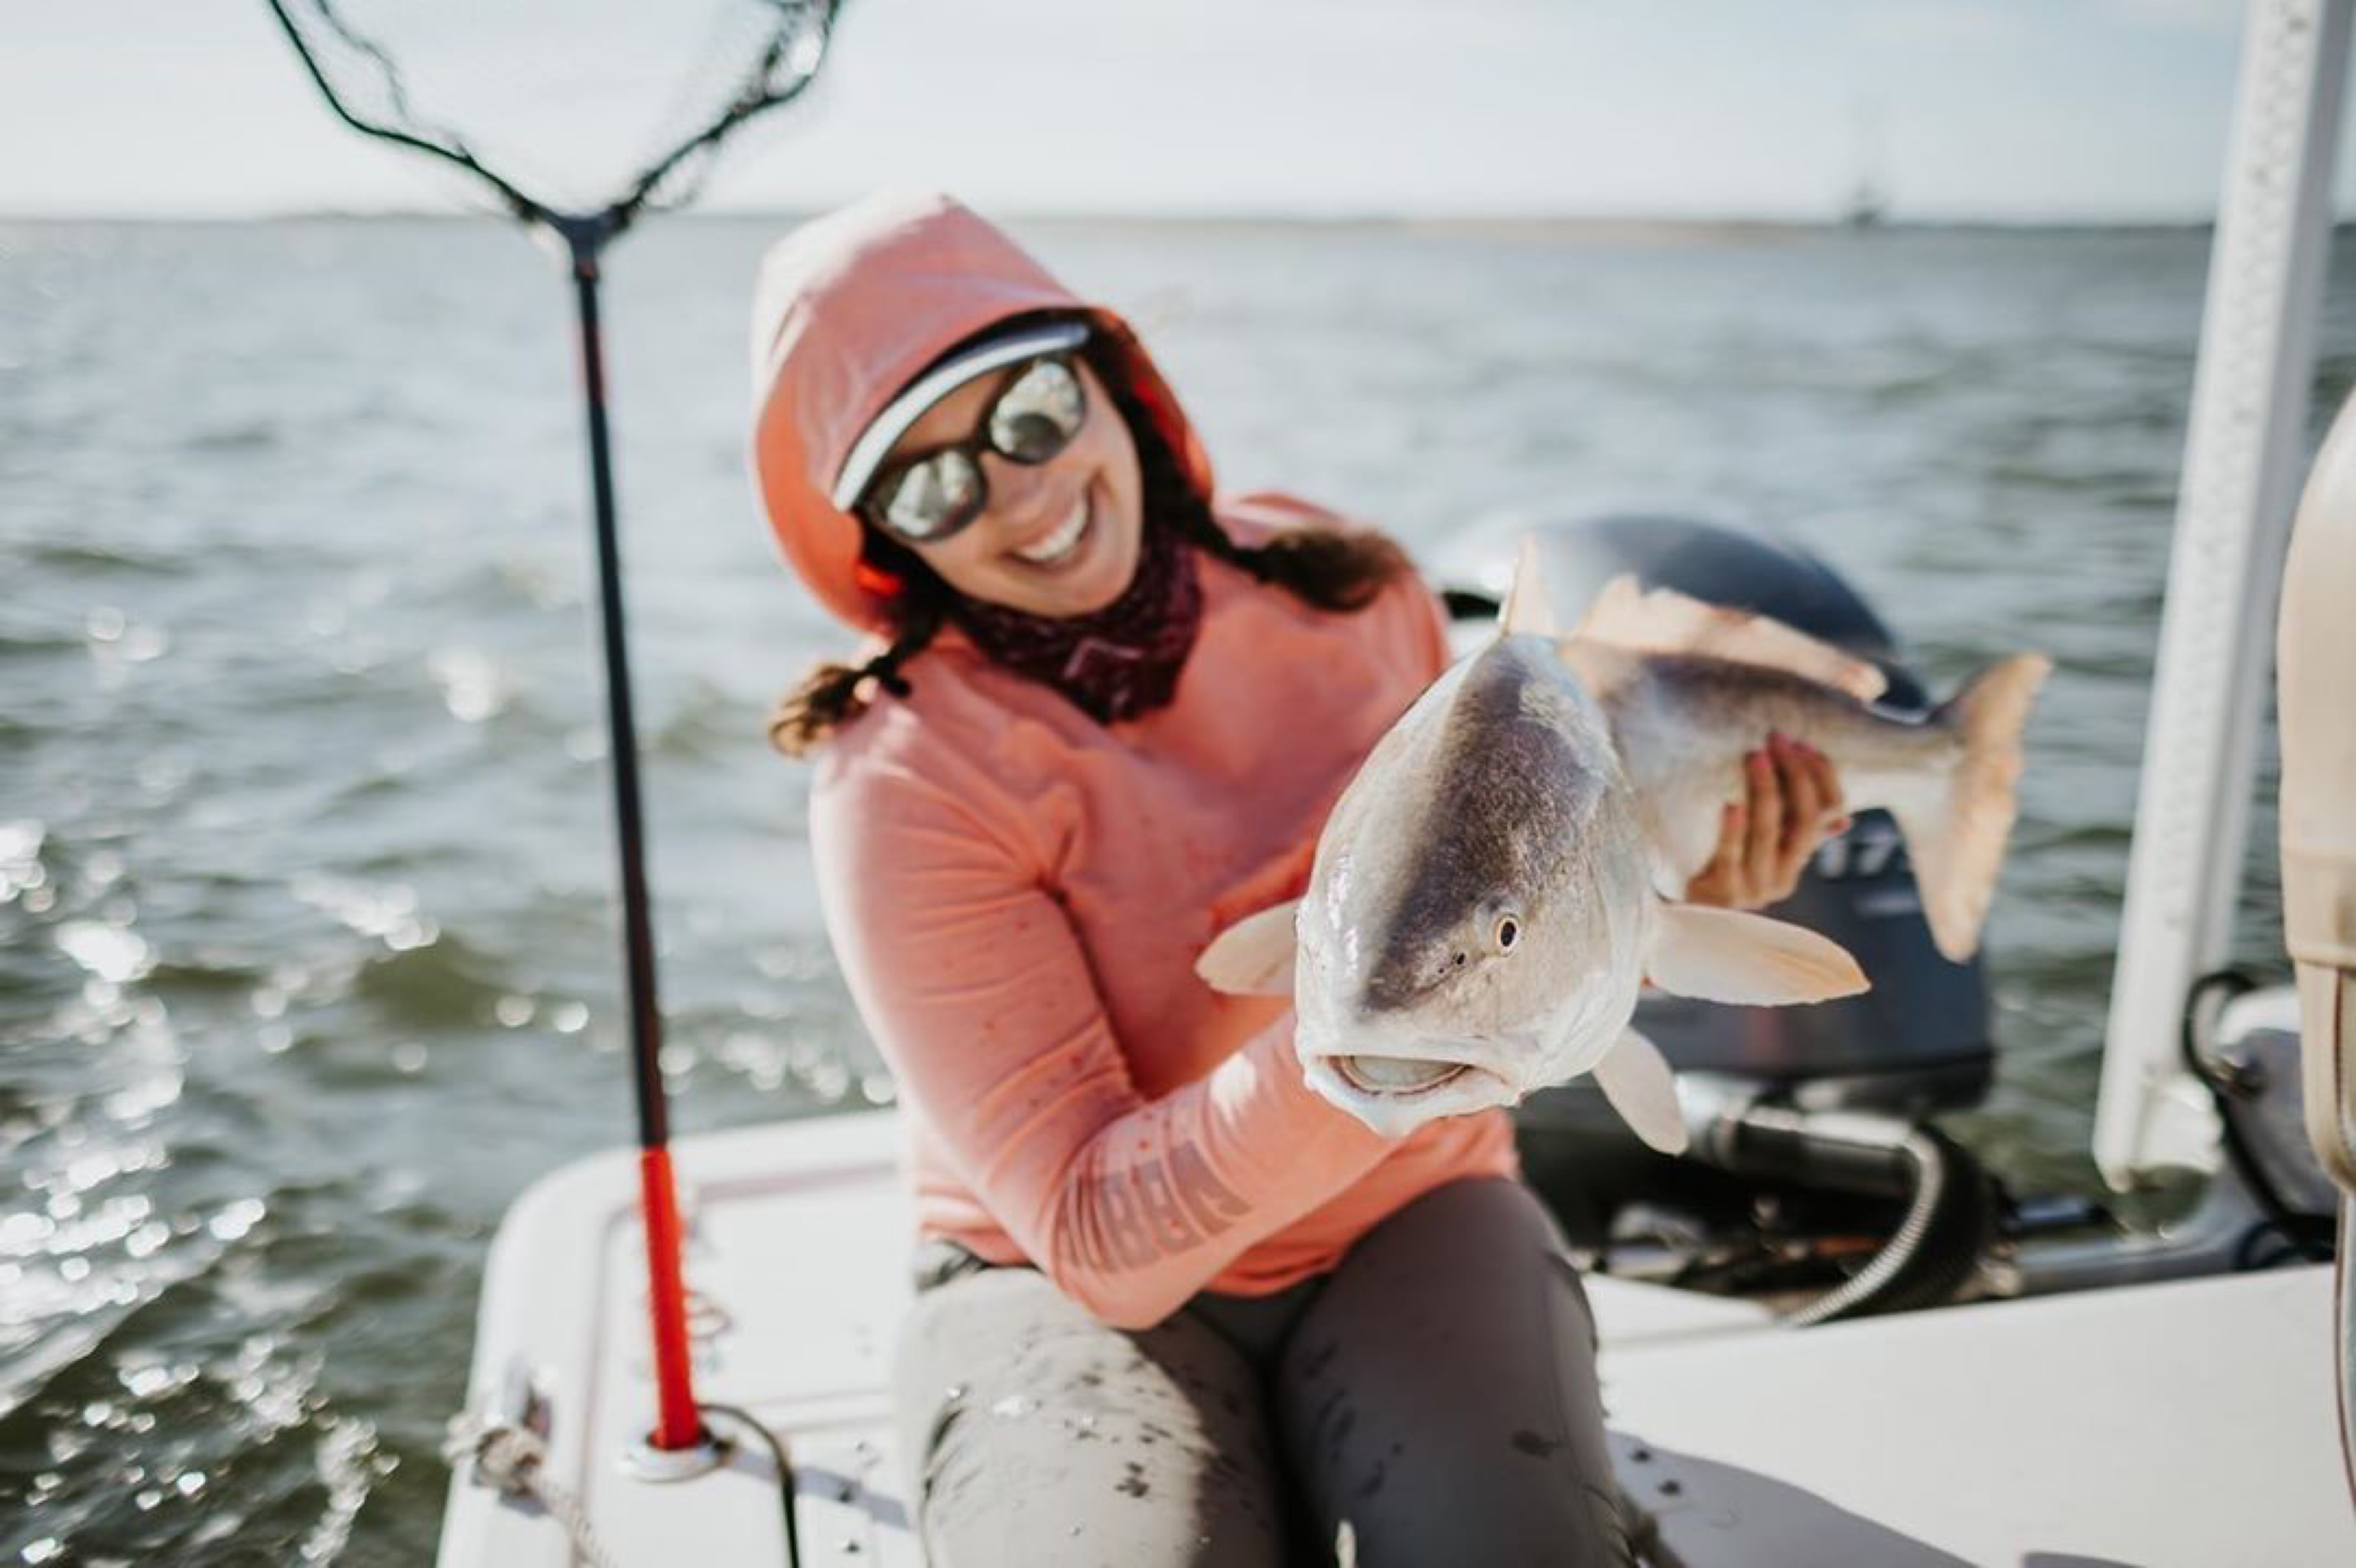 Woman holding fish on boat